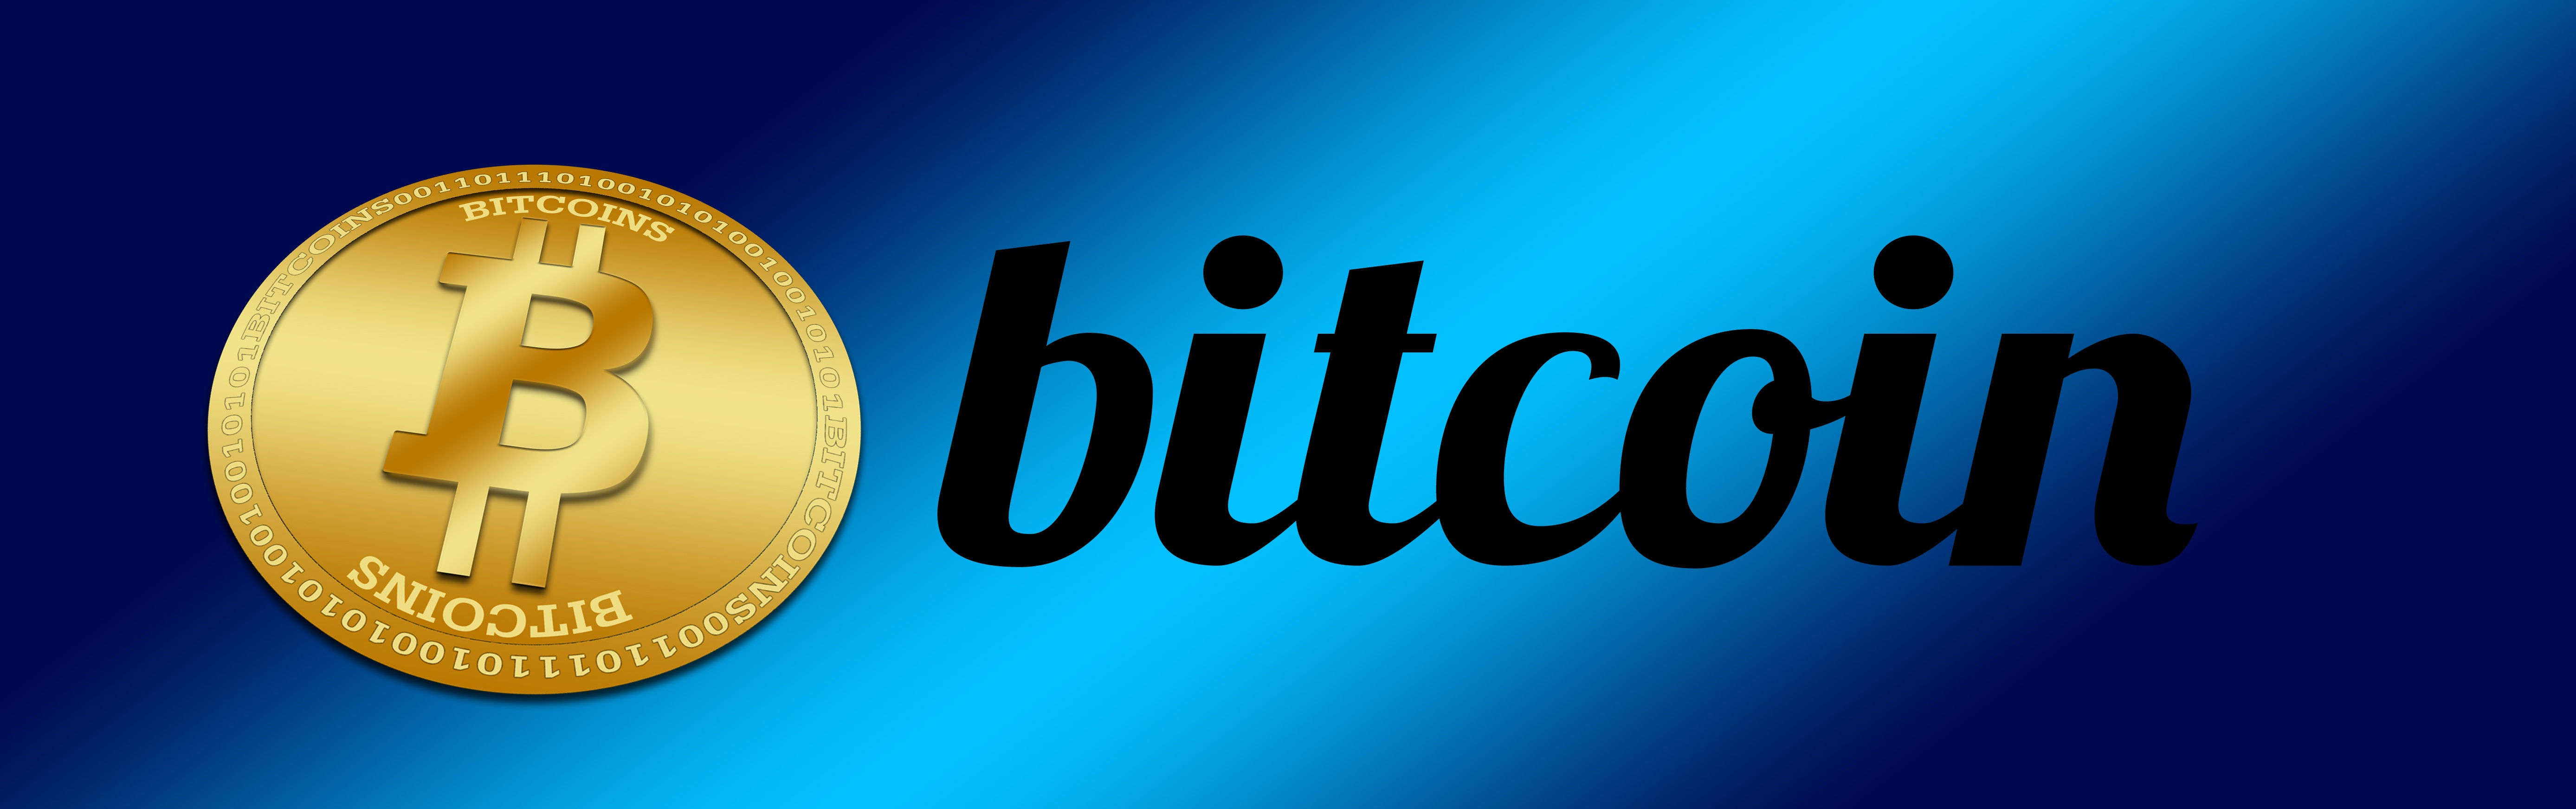 Oval Bitcoin Logo With A Blue Background Free Image Download